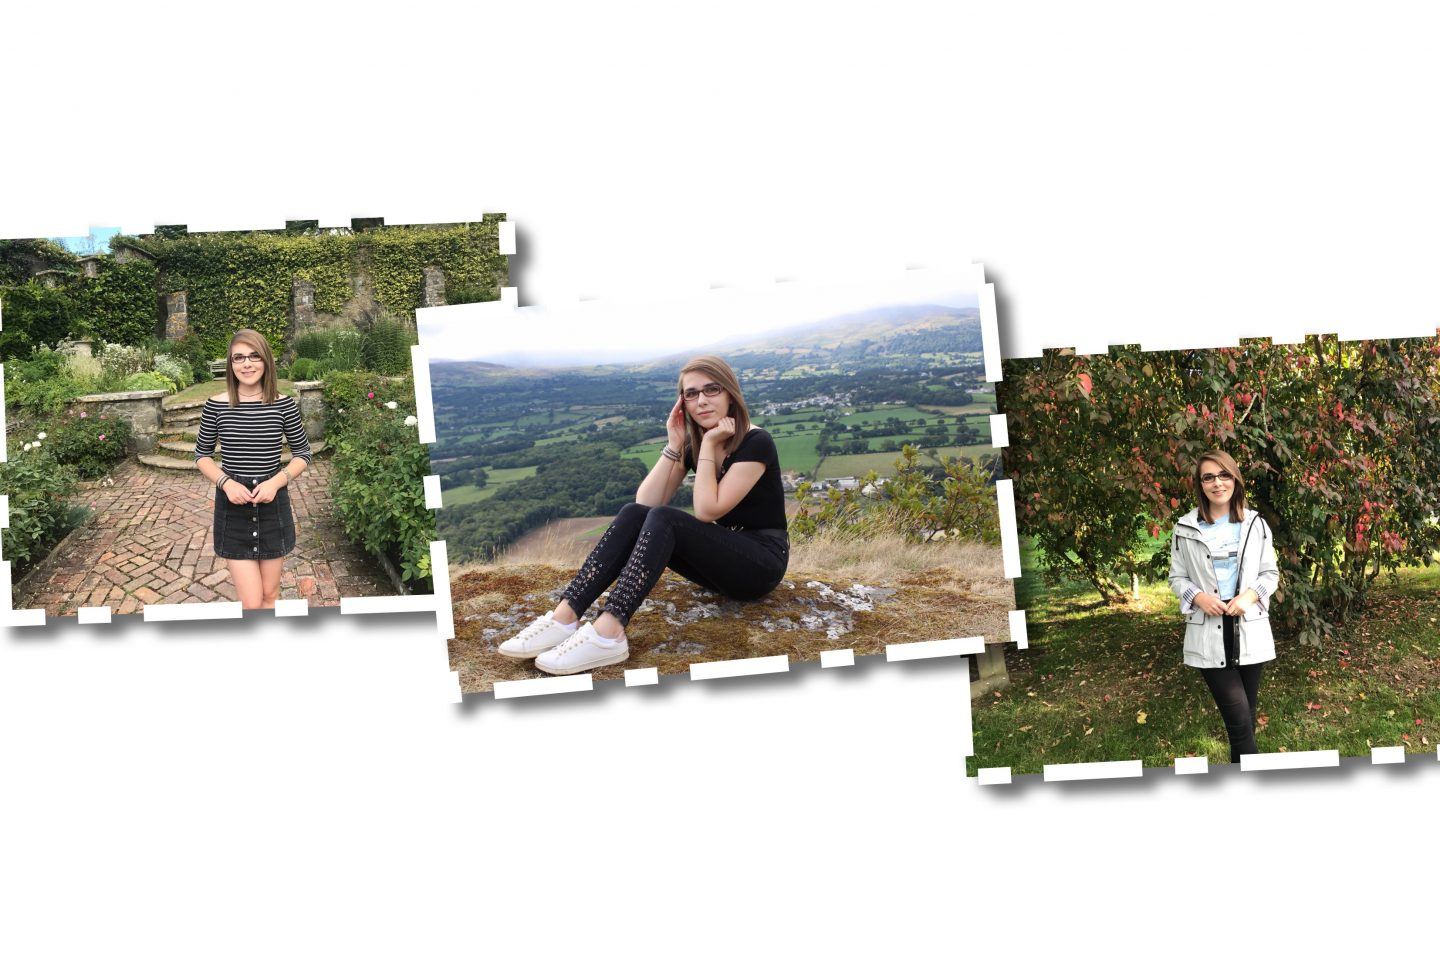 Three different photos of Elin, one is of her in a black denim skirt and striped bardot top standing on a cobbled street, the second is of her sitting on a grassy hill in front of a view of the mountains and the third is of her standing in front of a tree which has pink flowers on it